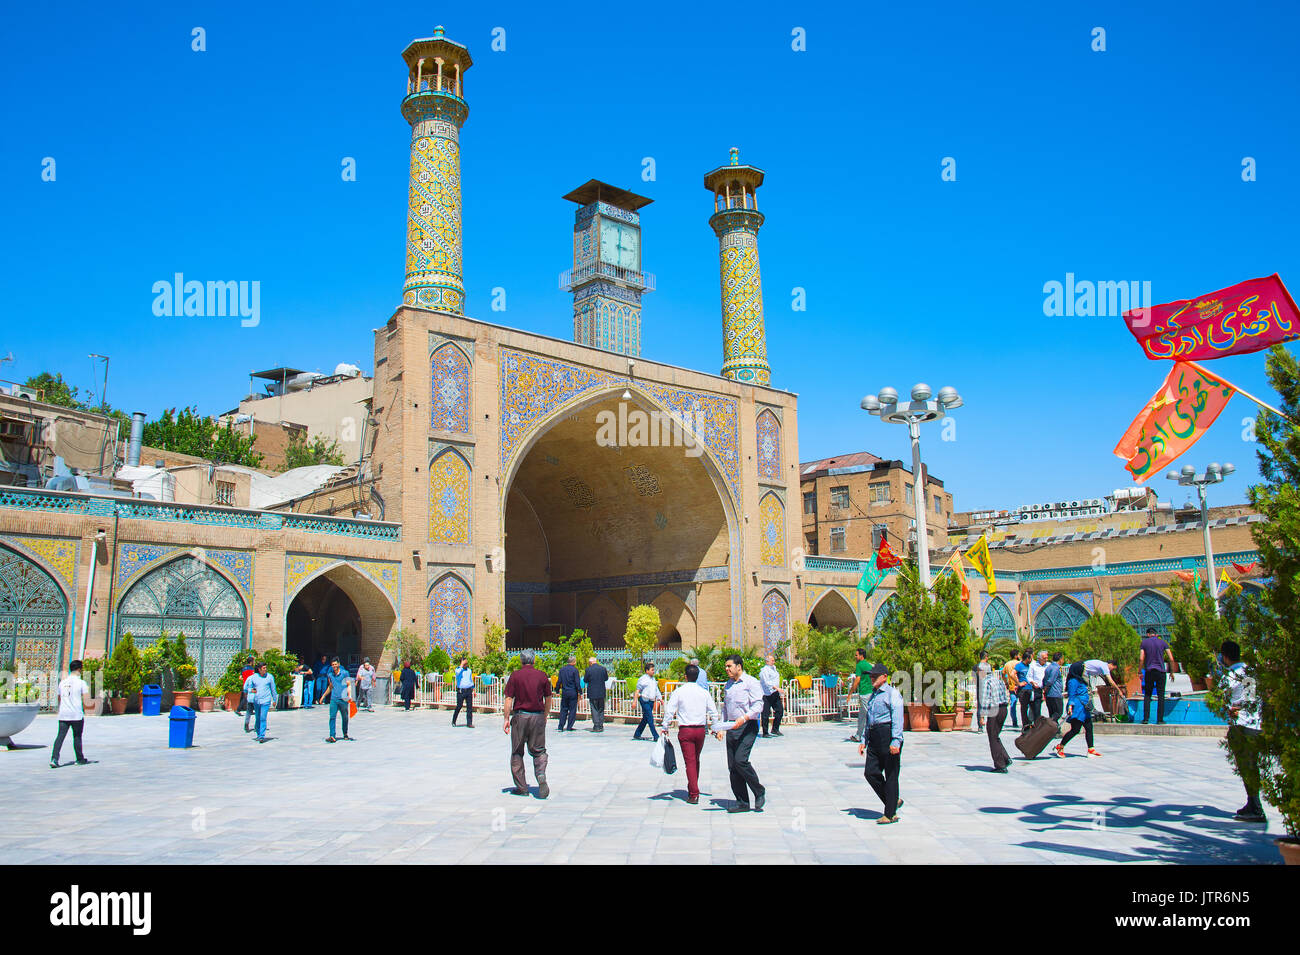 TEHRAN, IRAN - MAY 22, 2017: People walking at the Shah Mosque, also known as the Imam Khomeini Mosque is a mosque in the Grand Bazaar in Tehran, Iran - Stock Image